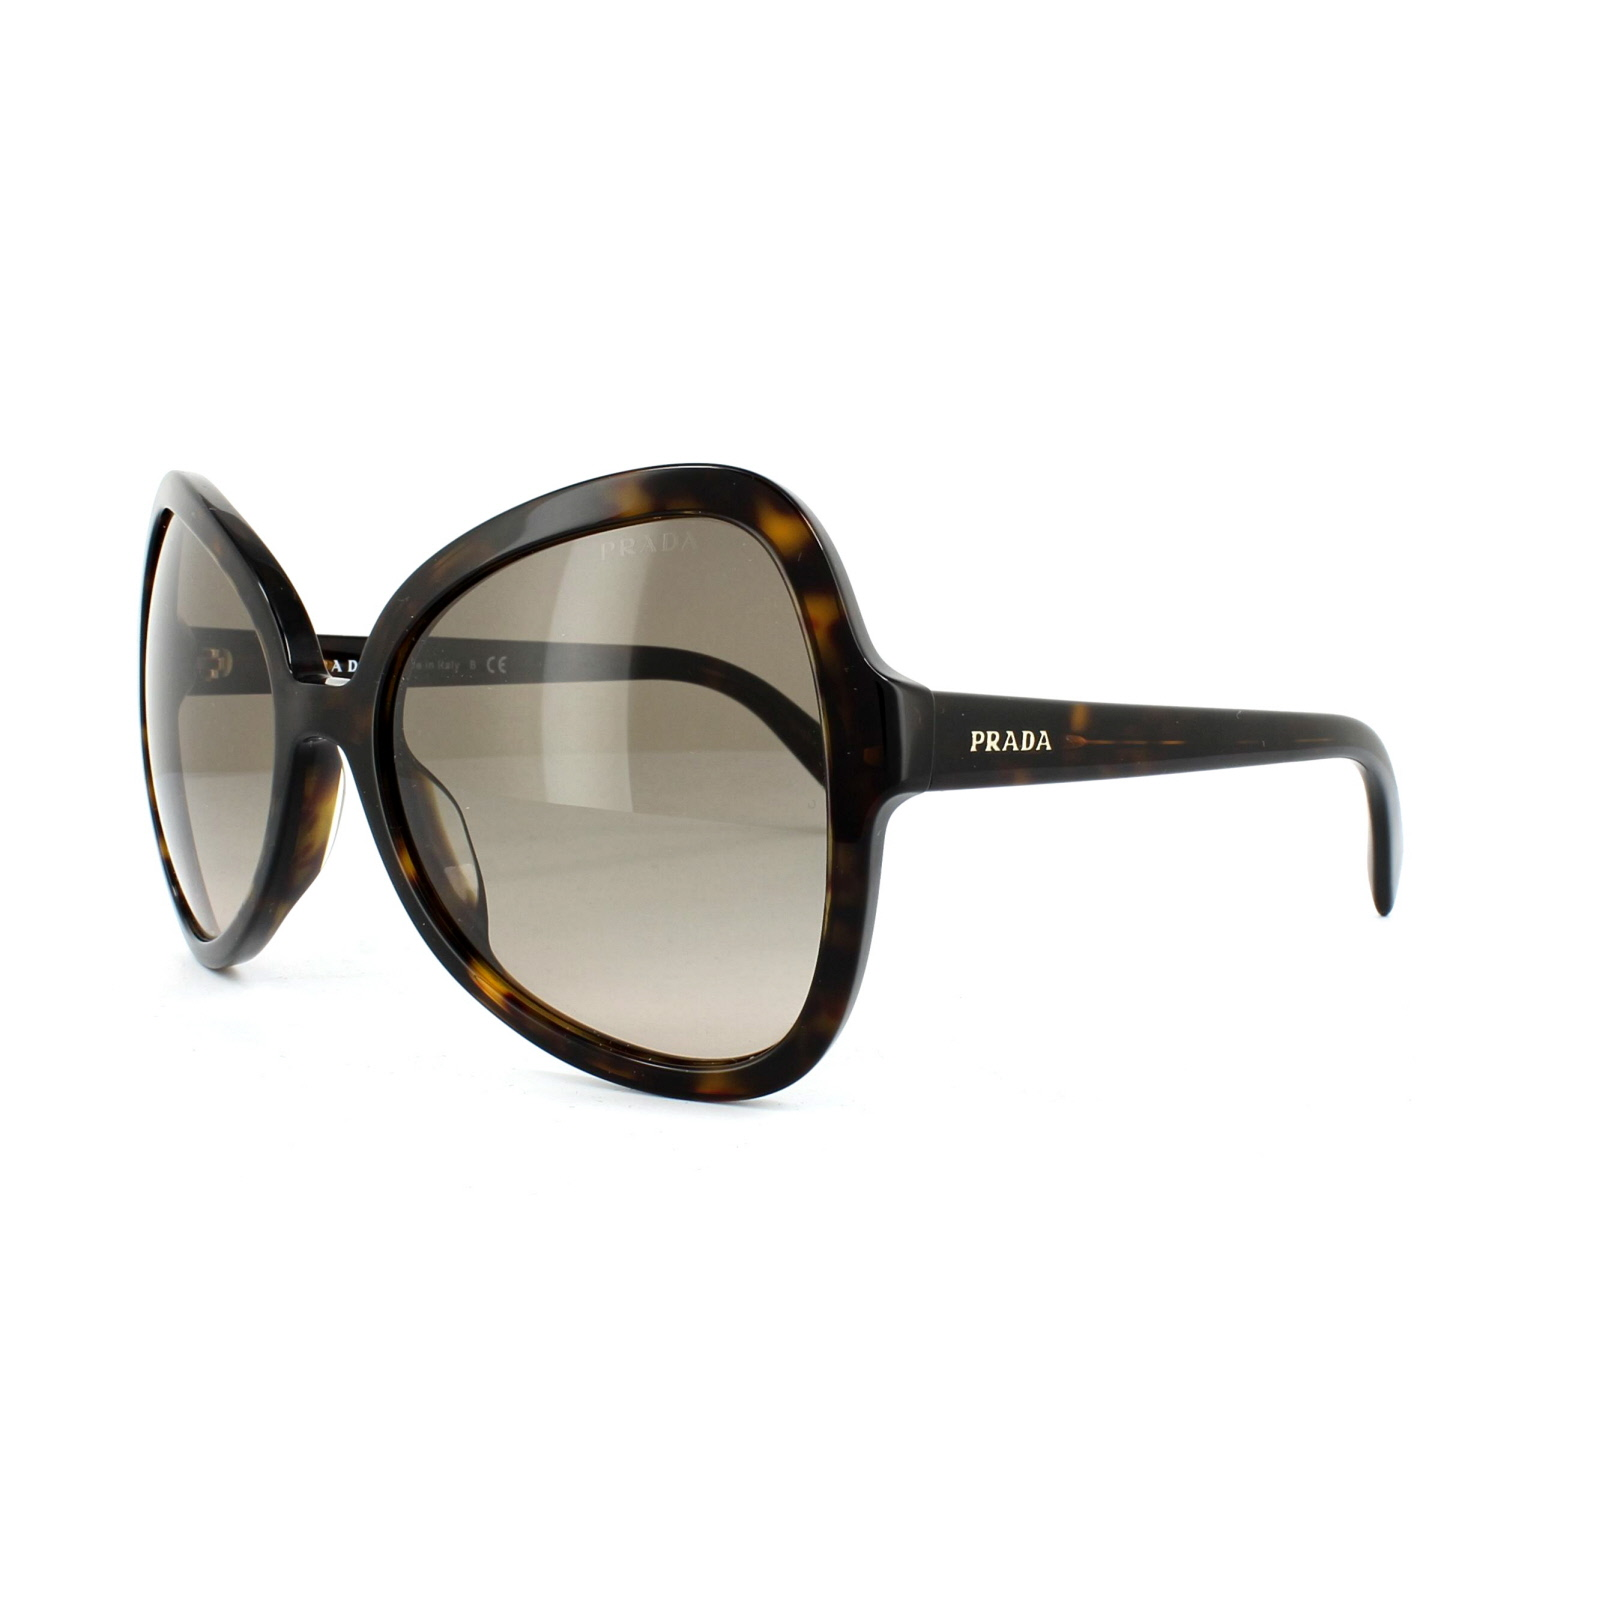 Prada Sunglasses 05SS 2AU3D0 Havana Light Brown Gradient